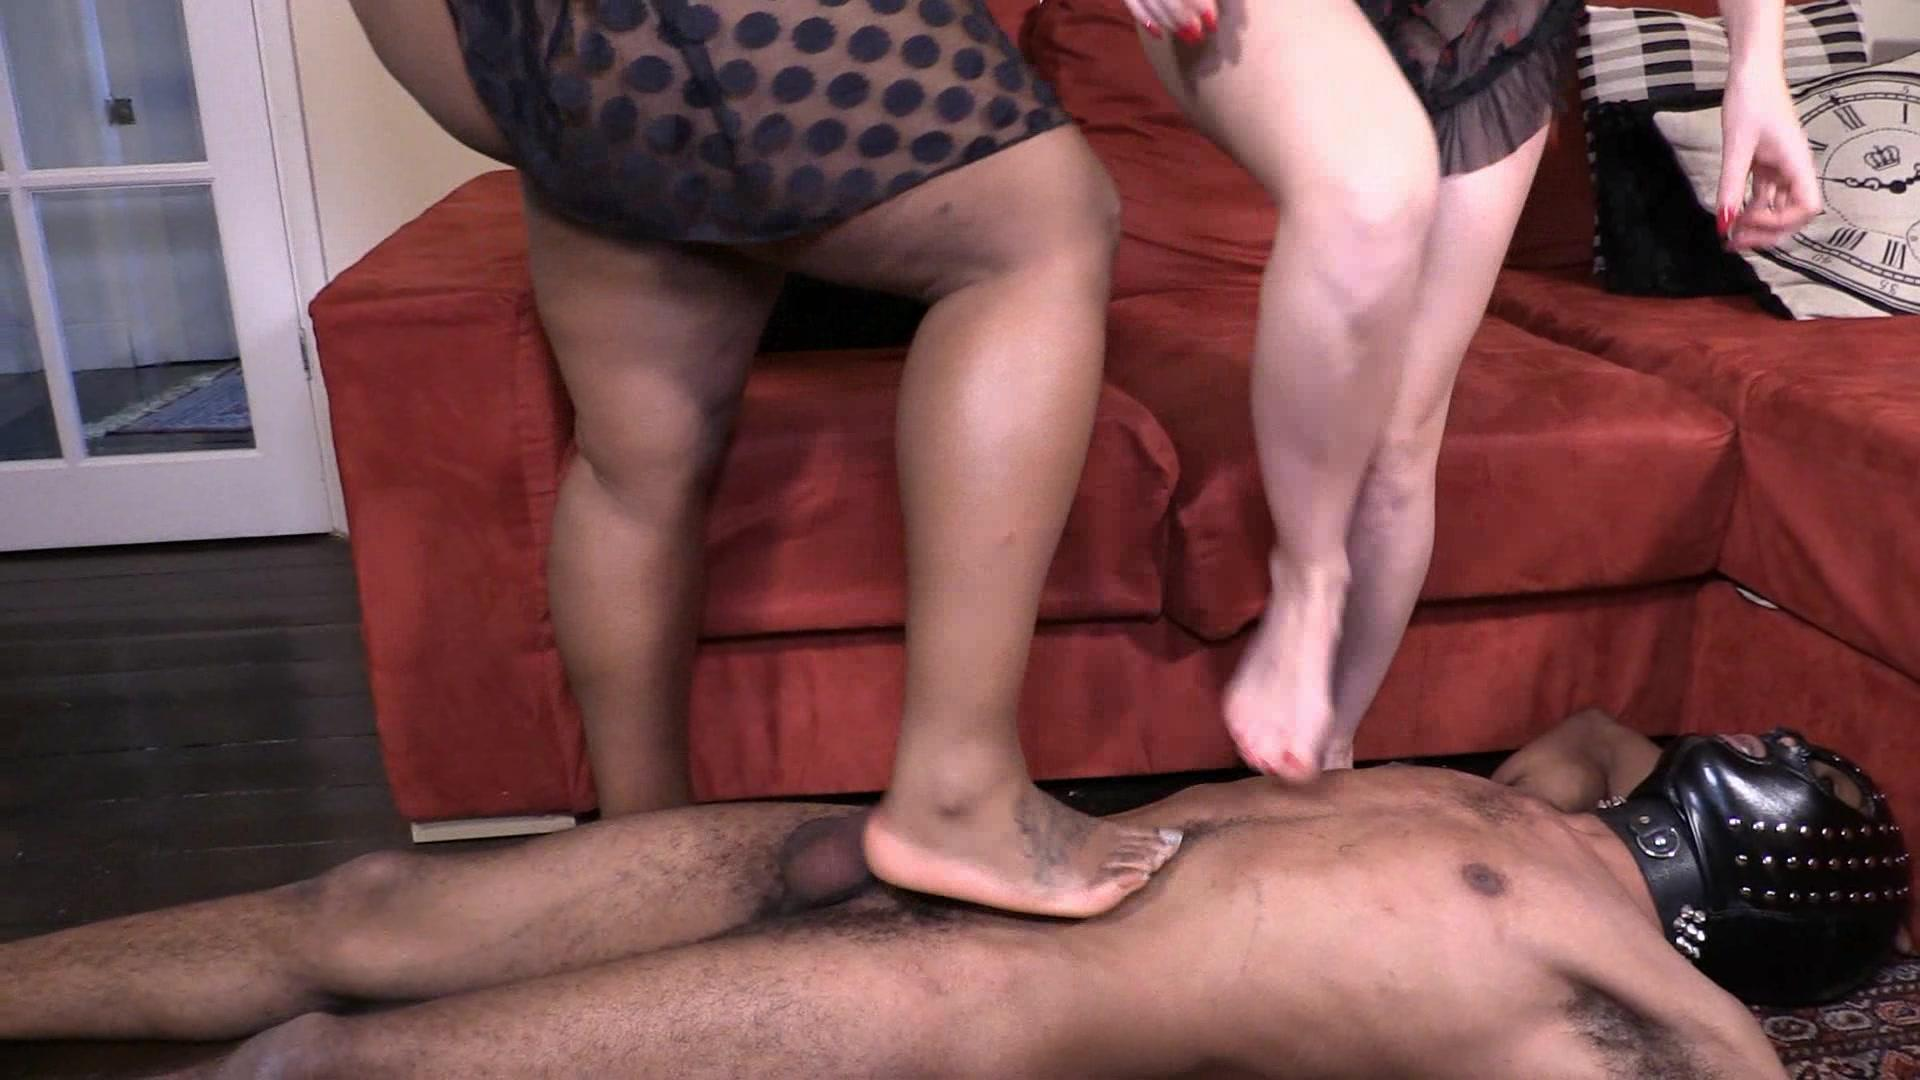 Female domination trample free video clips, hotnude panjabi pice